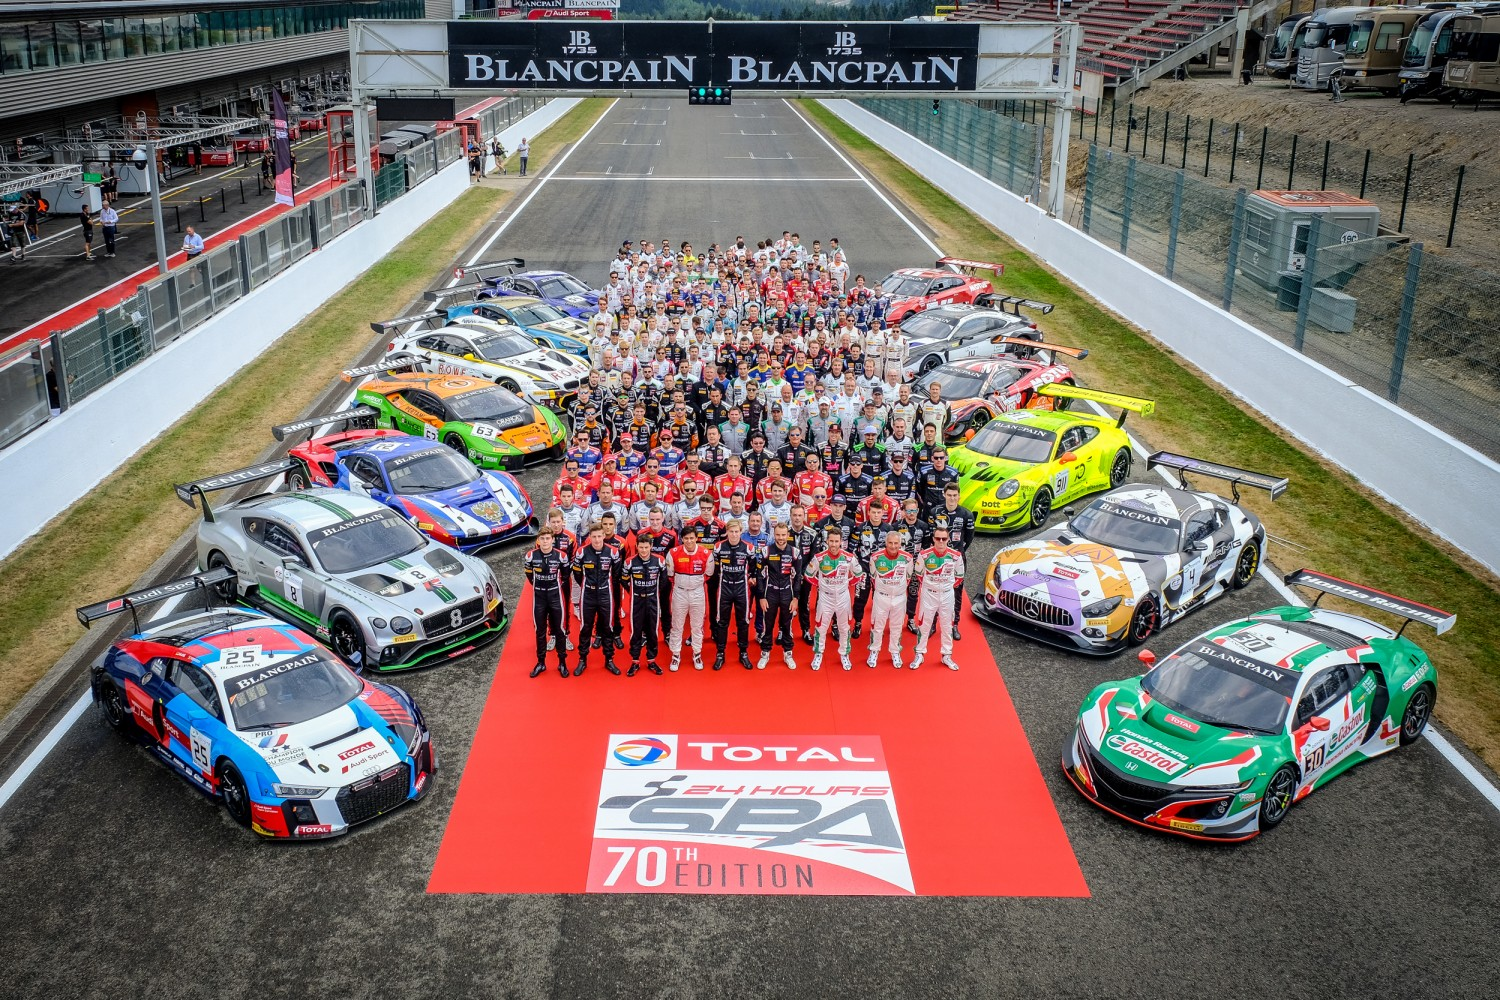 Official Total 24 Hours of Spa photograph brings together the stars of international GT racing